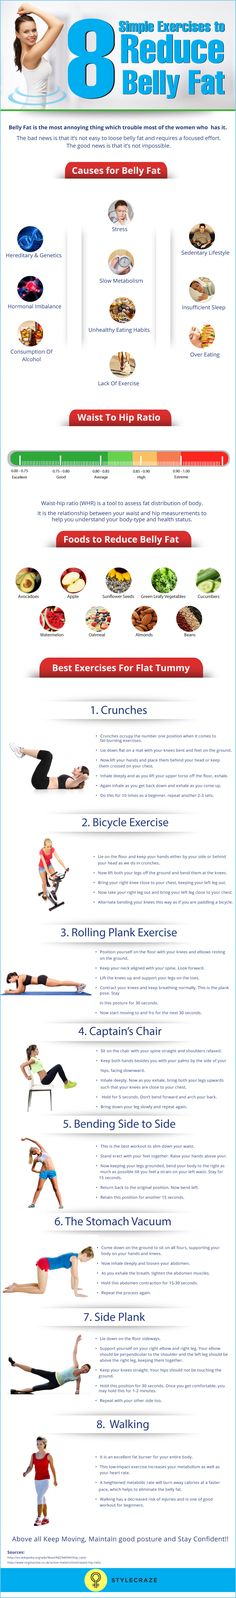 17 Simple Exercises To Reduce Belly Fat